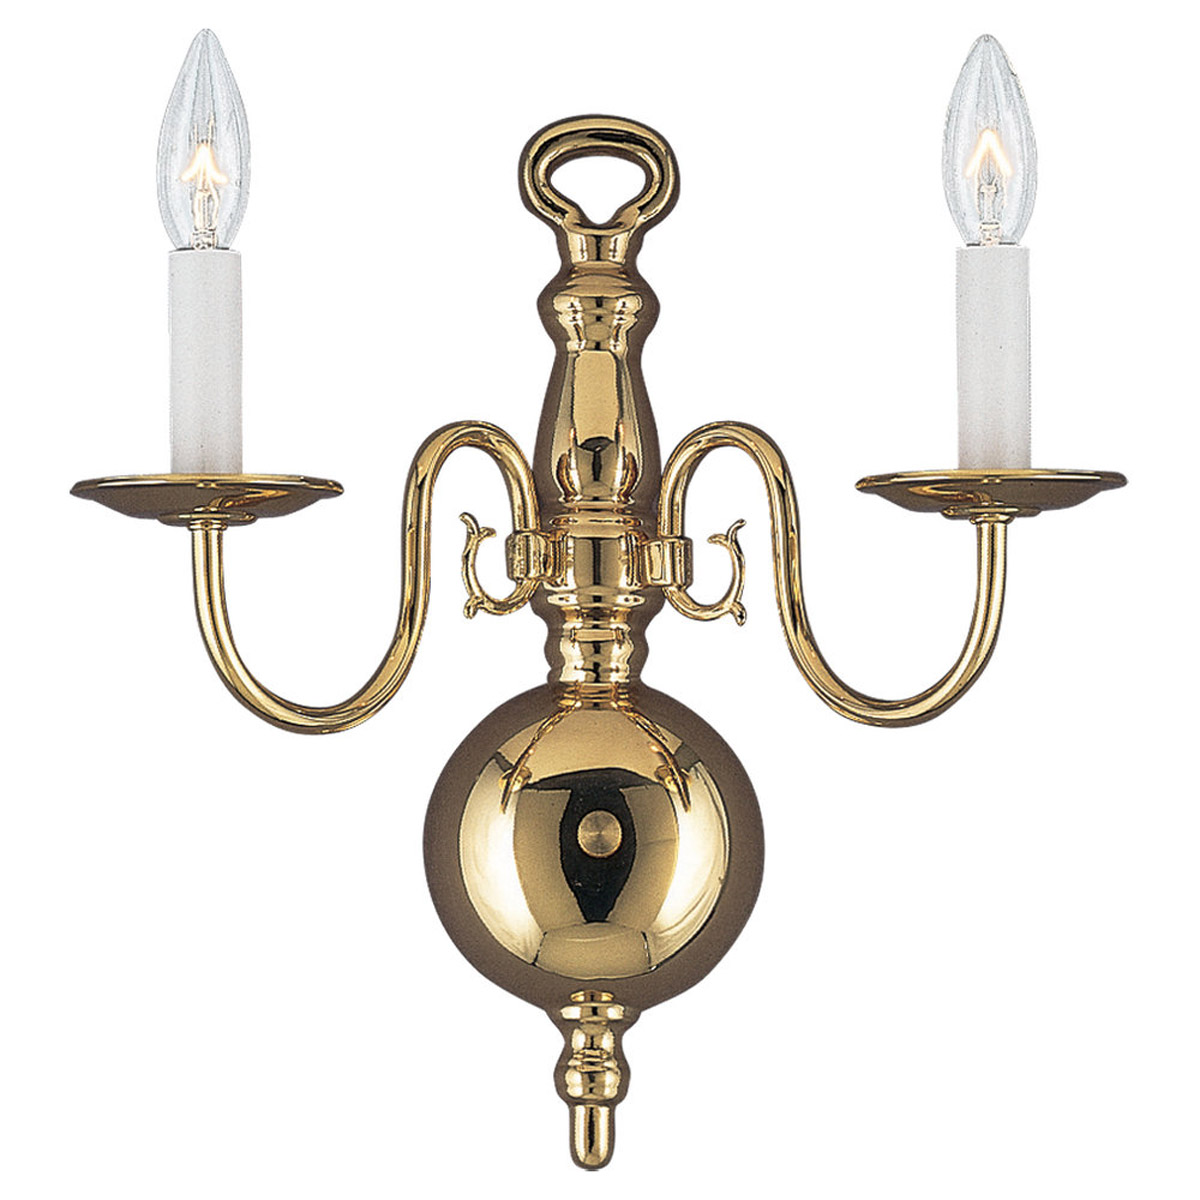 Sea Gull Lighting Traditional 2 Light Bath Vanity in Polished Brass 4179-02